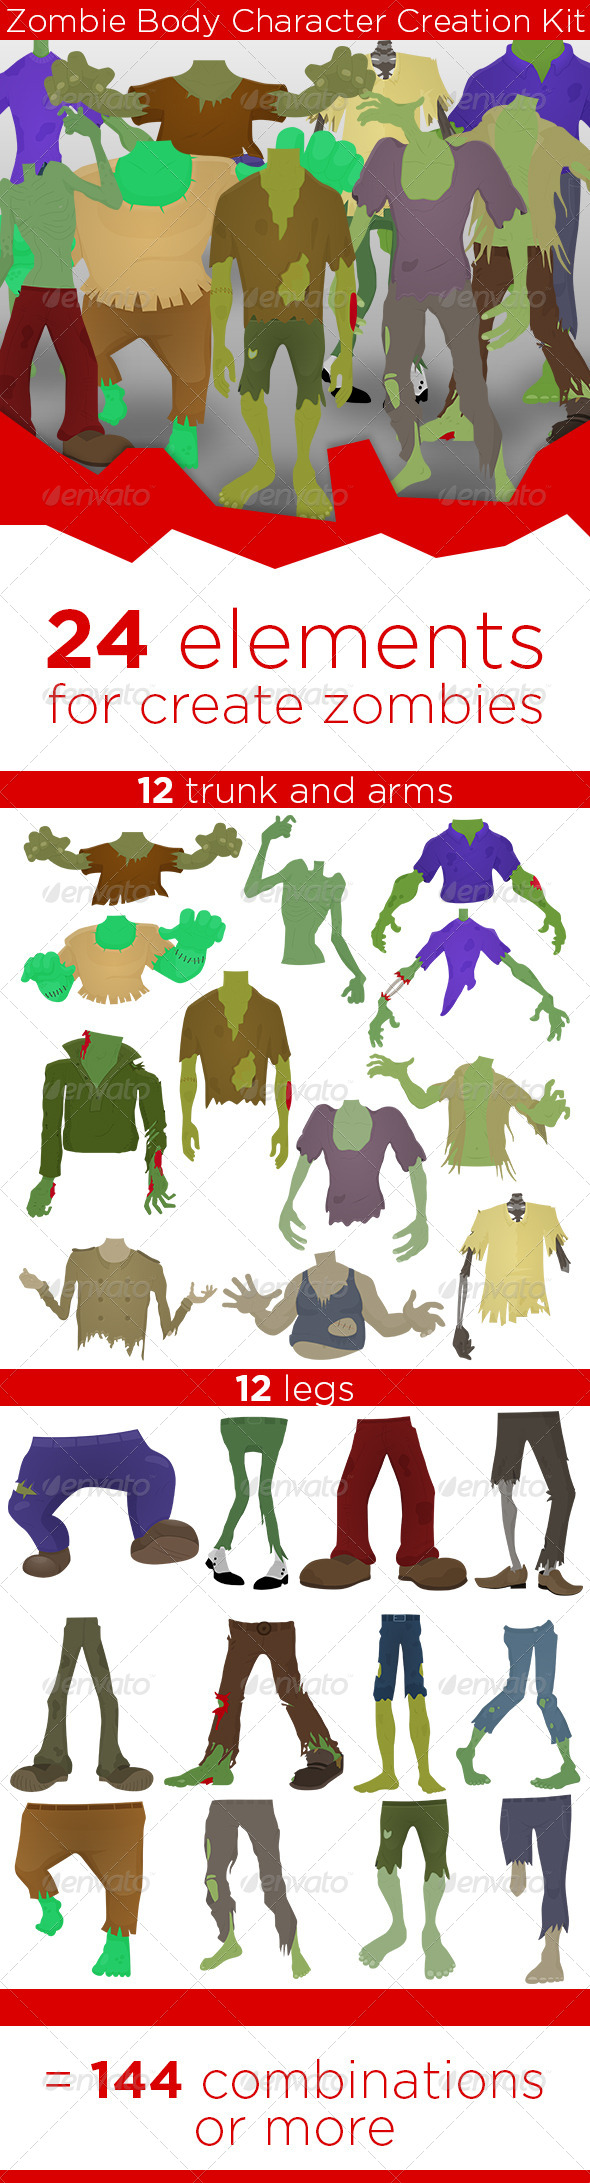 Zombie Body Character Creation Kit